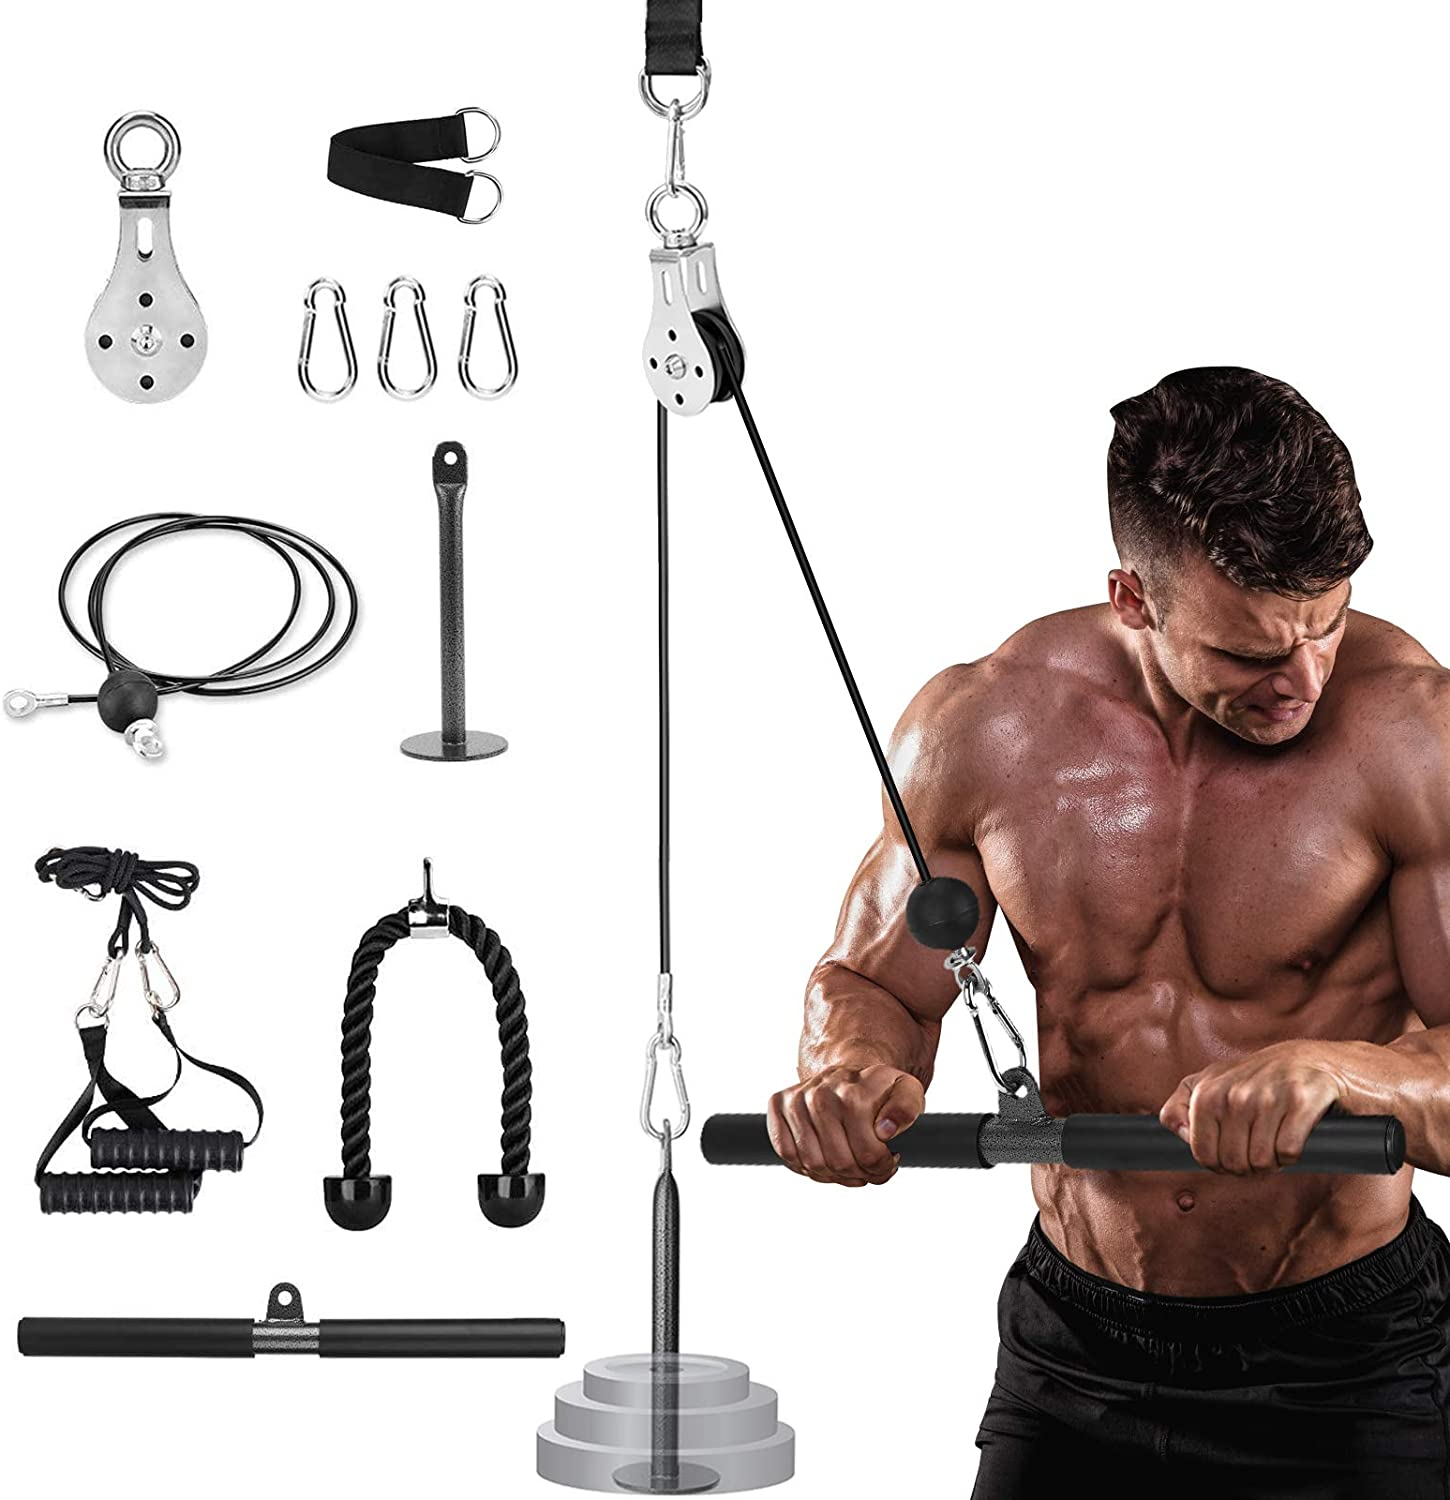 Cable Machine Gym Pulley System, Fitness Lat Pulldown Bars Attachments, 1.8M LAT and Lift Pulley Cable System with Loading Pin, Home Gym Equipment for Triceps Pull Down, Biceps Curl, Back, Forearm